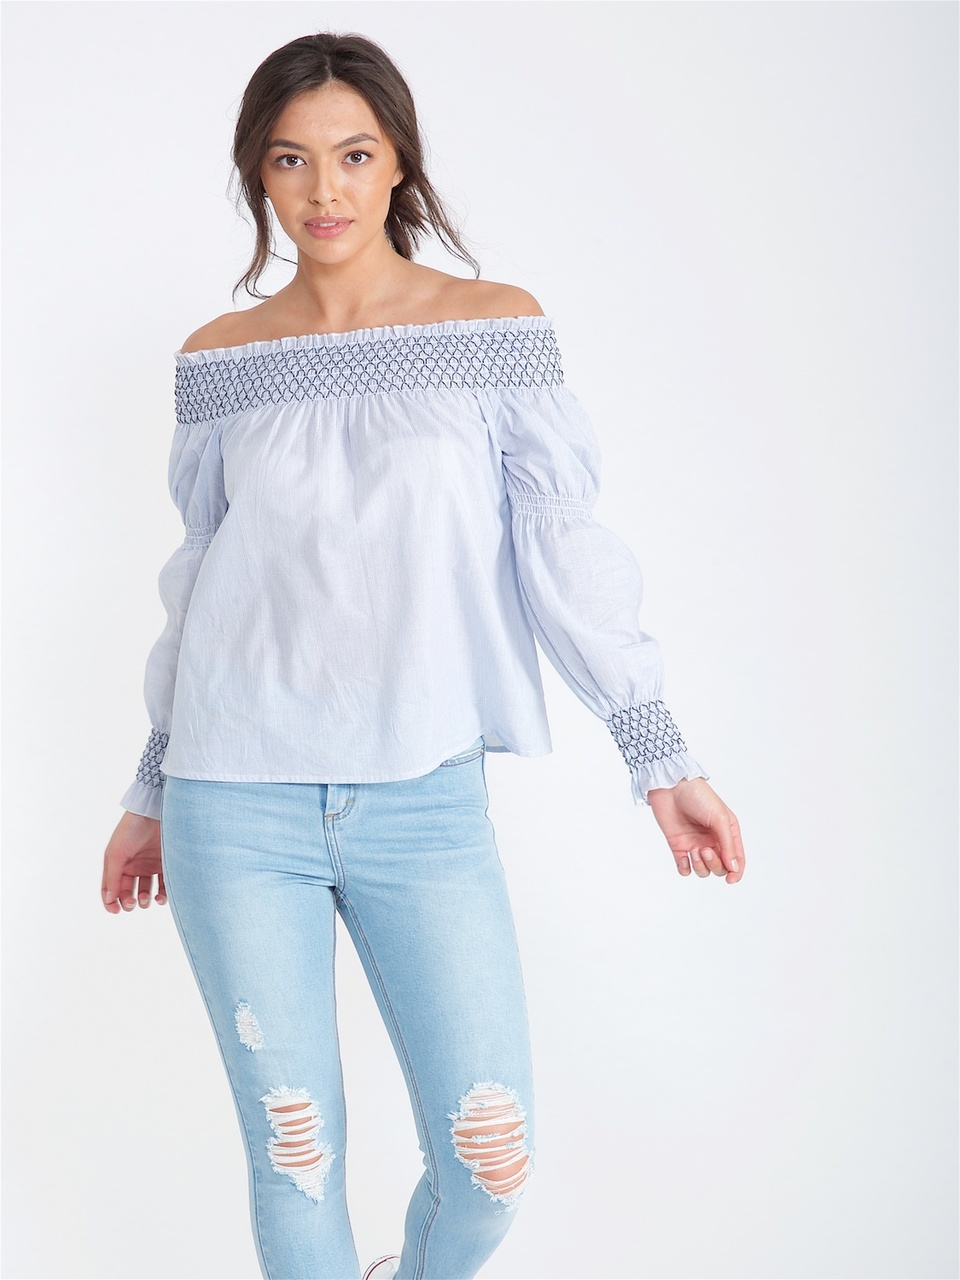 902e139577df7 Blue Stripe Contrast Stitch Bardot Top l Influence Fashion New In SS 18